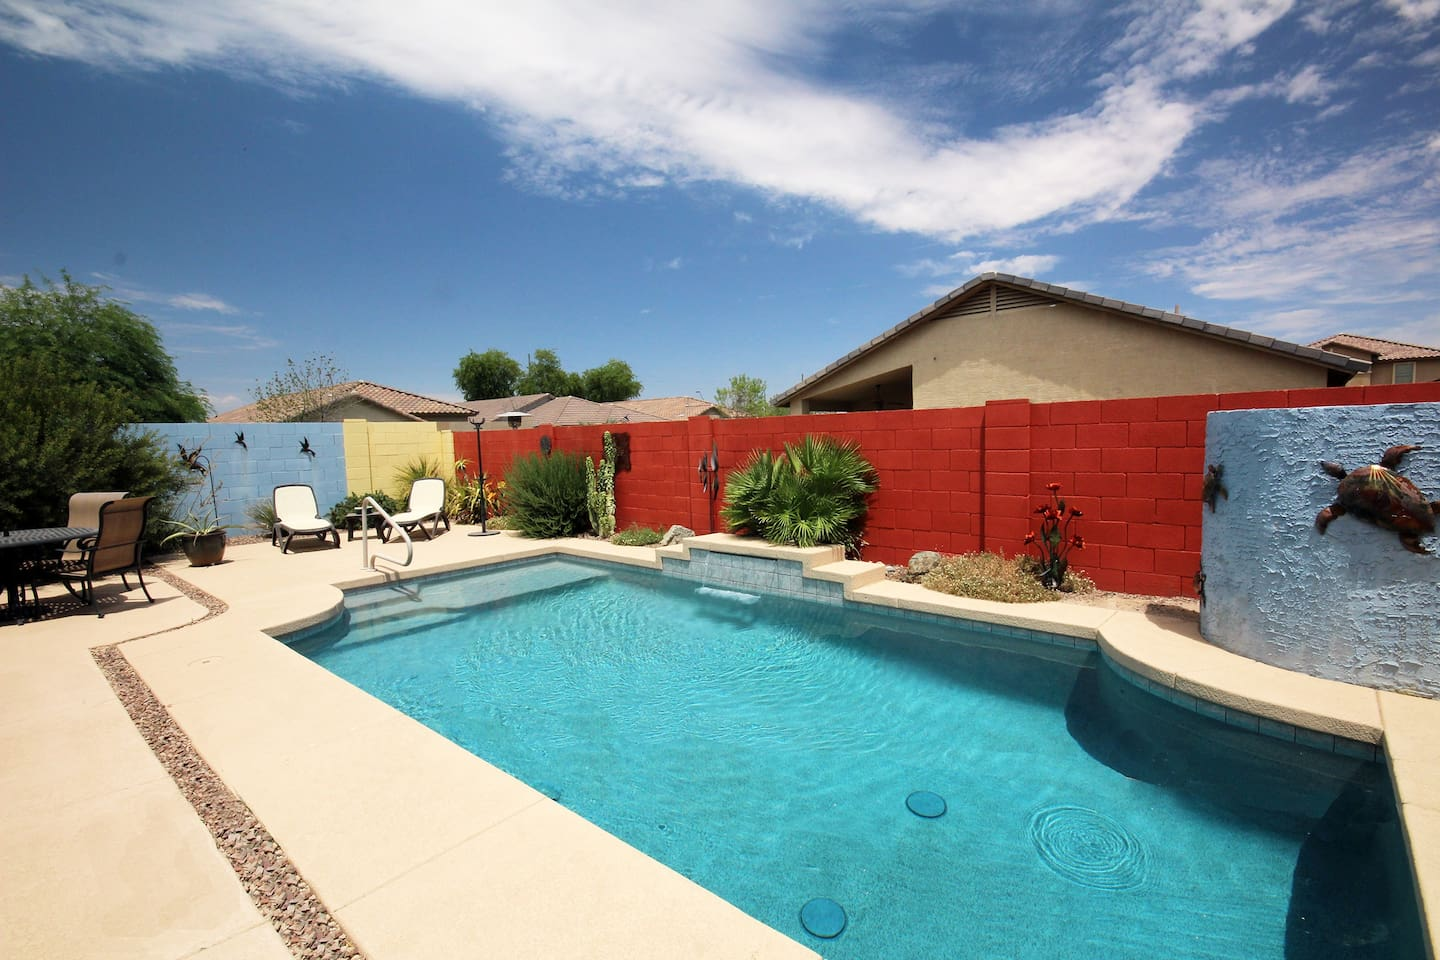 Relax and enjoy the refreshing pool.  The bright colors make for great photos to remember your time in San Tan Arizona.